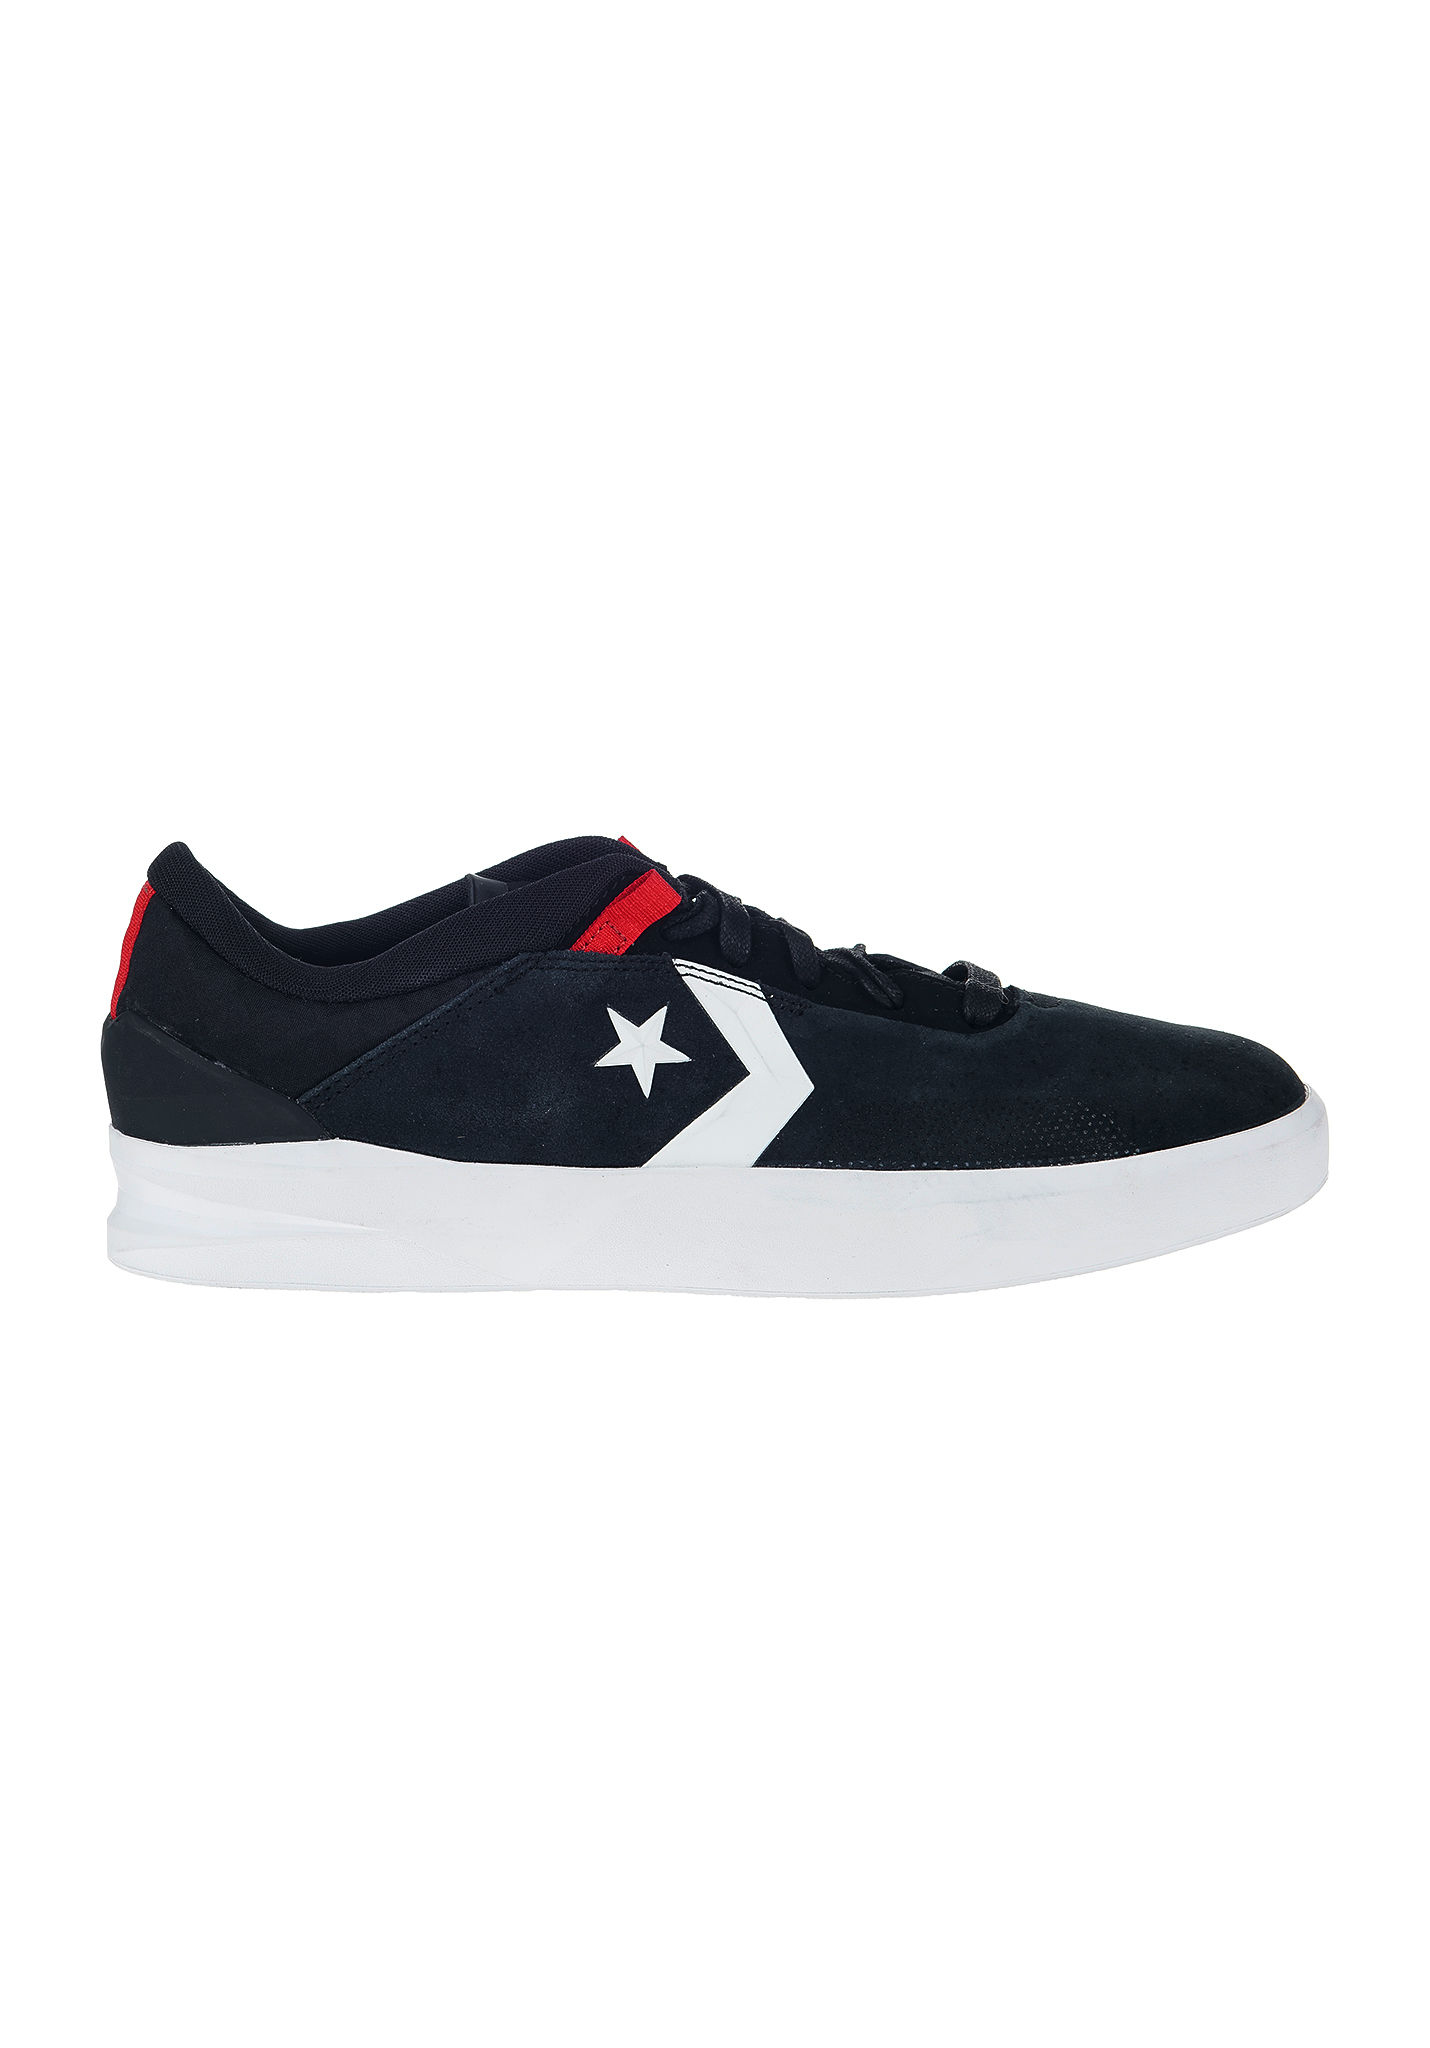 5281150a164c Metric Converse Ox Men For Planet Sneakers Black Cons Sports Cls q55Zwx4A